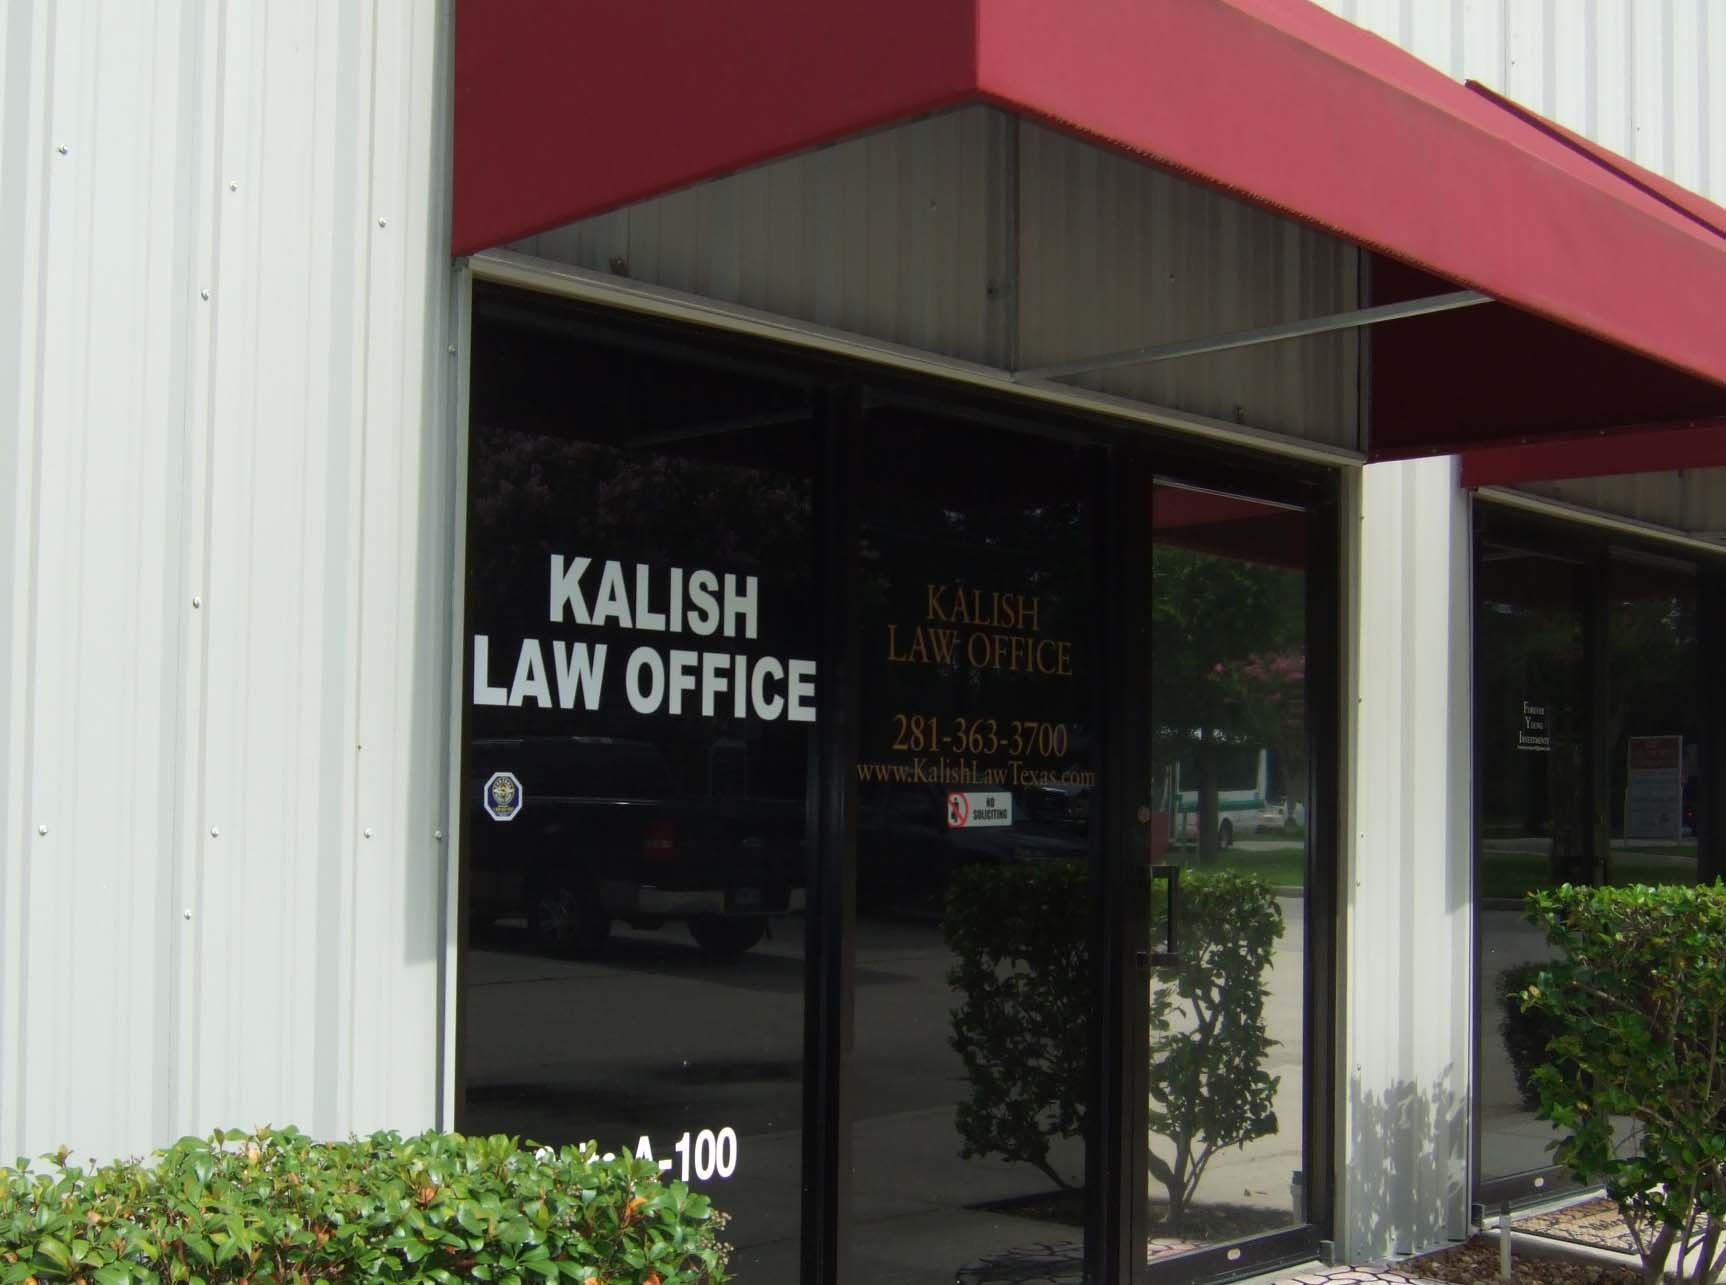 Front view of Kalish Law Office